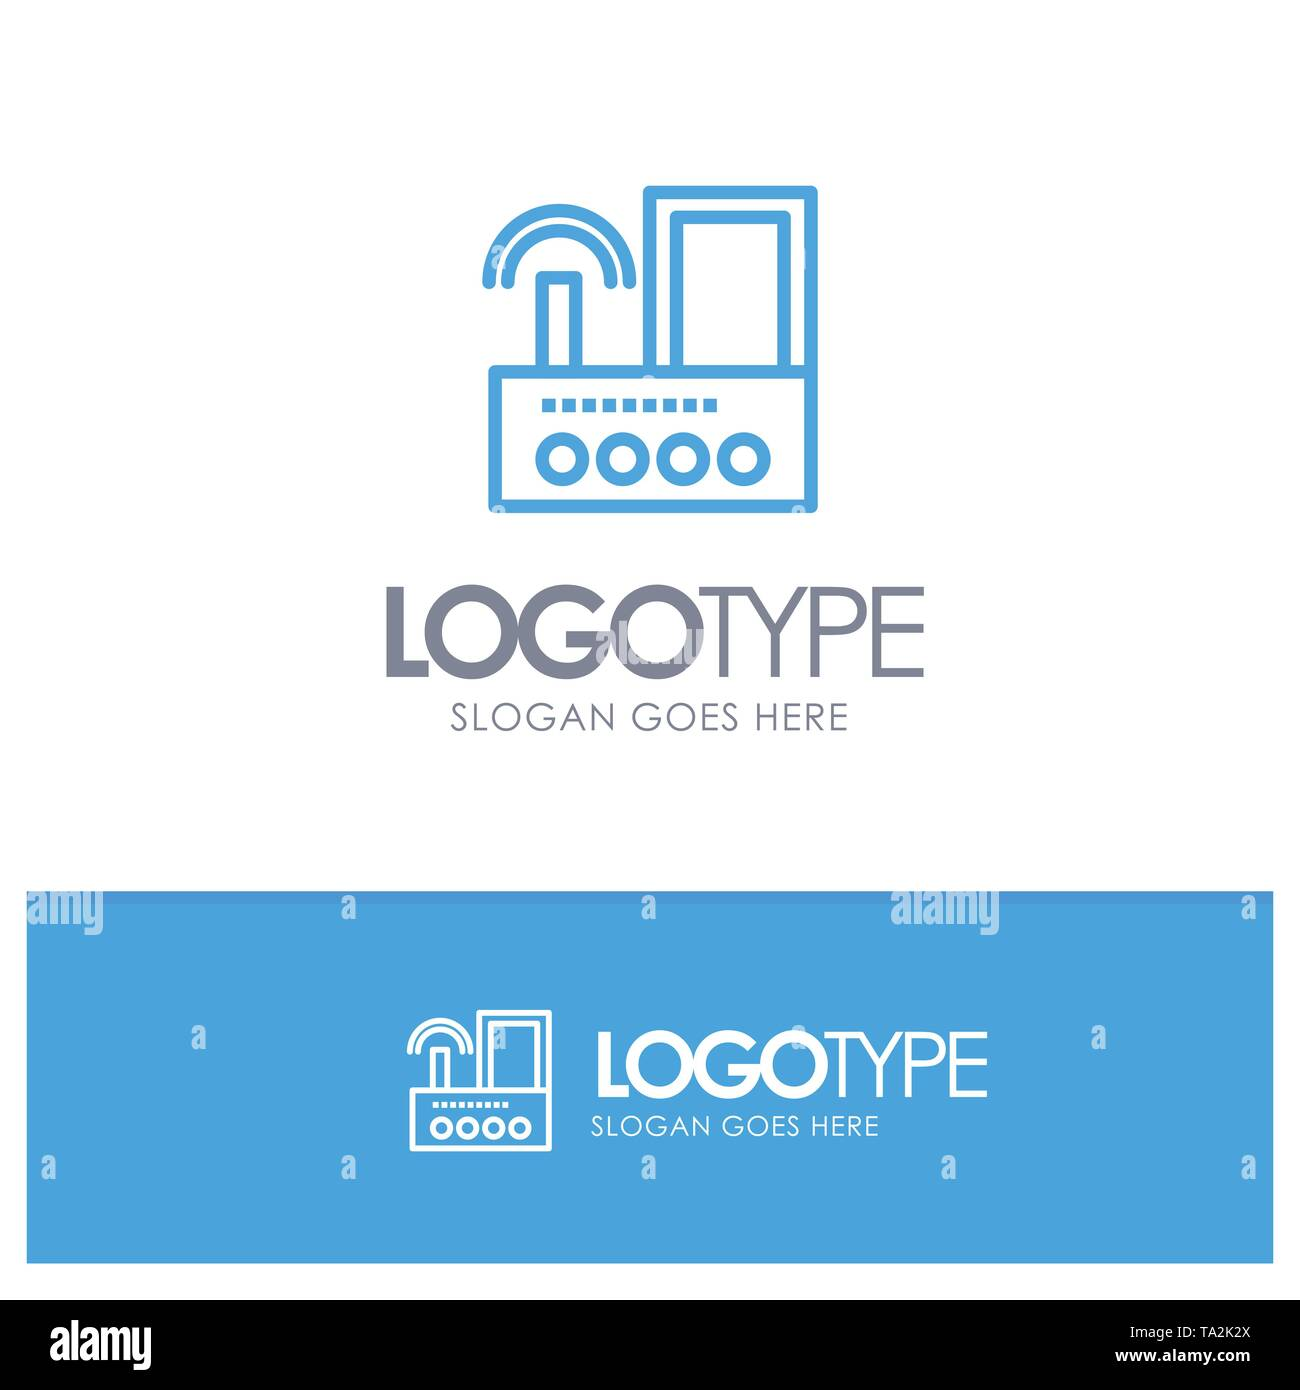 Router, Device, Signal, Wifi, Radio Blue outLine Logo with place for tagline - Stock Image